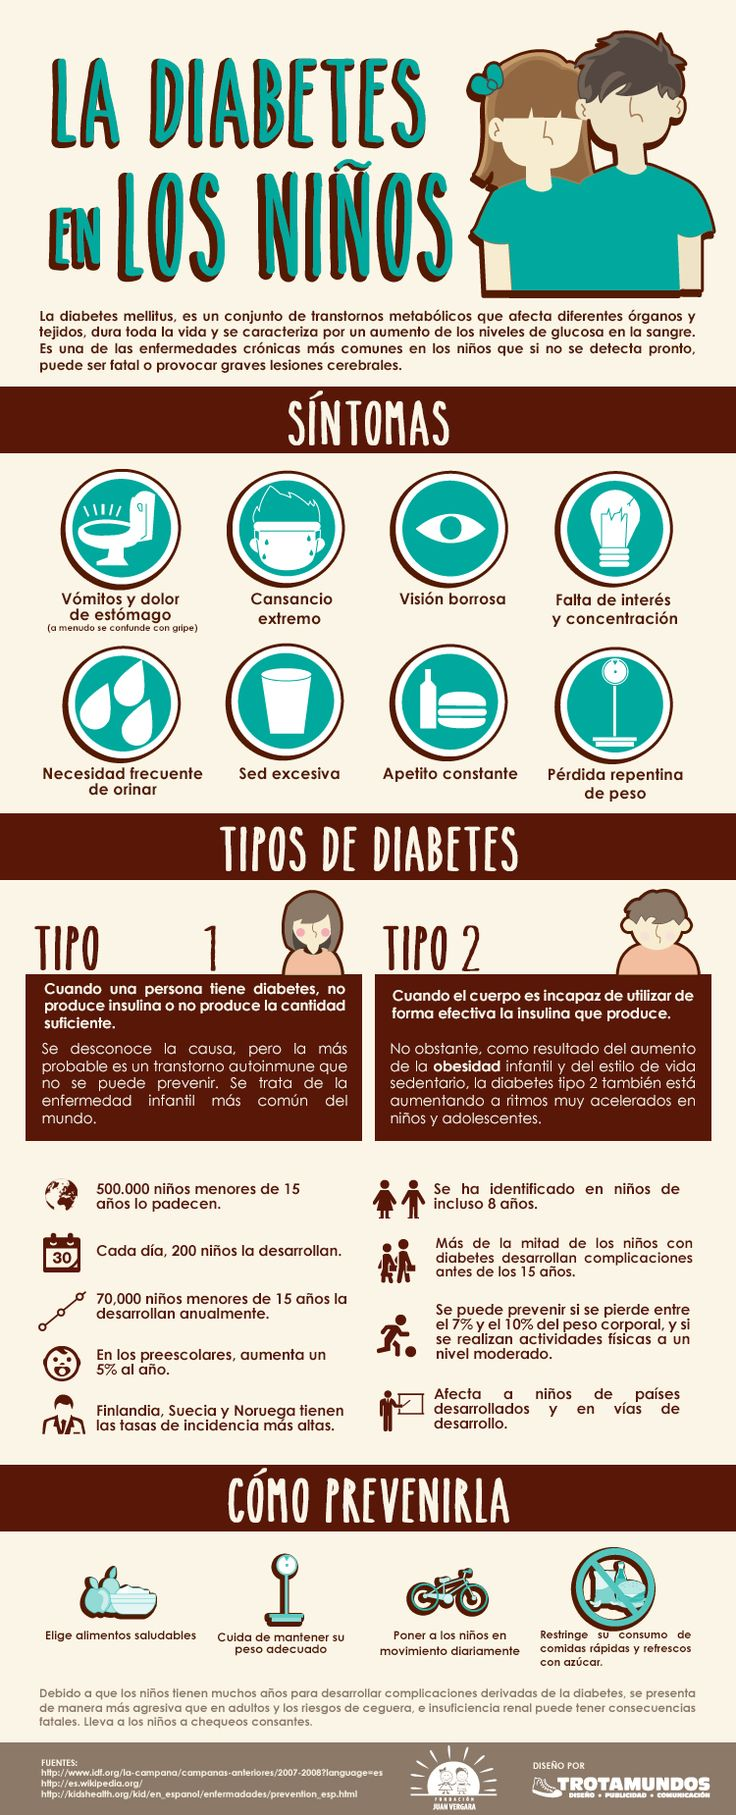 49 best images about Infografías on Pinterest | Diabetes